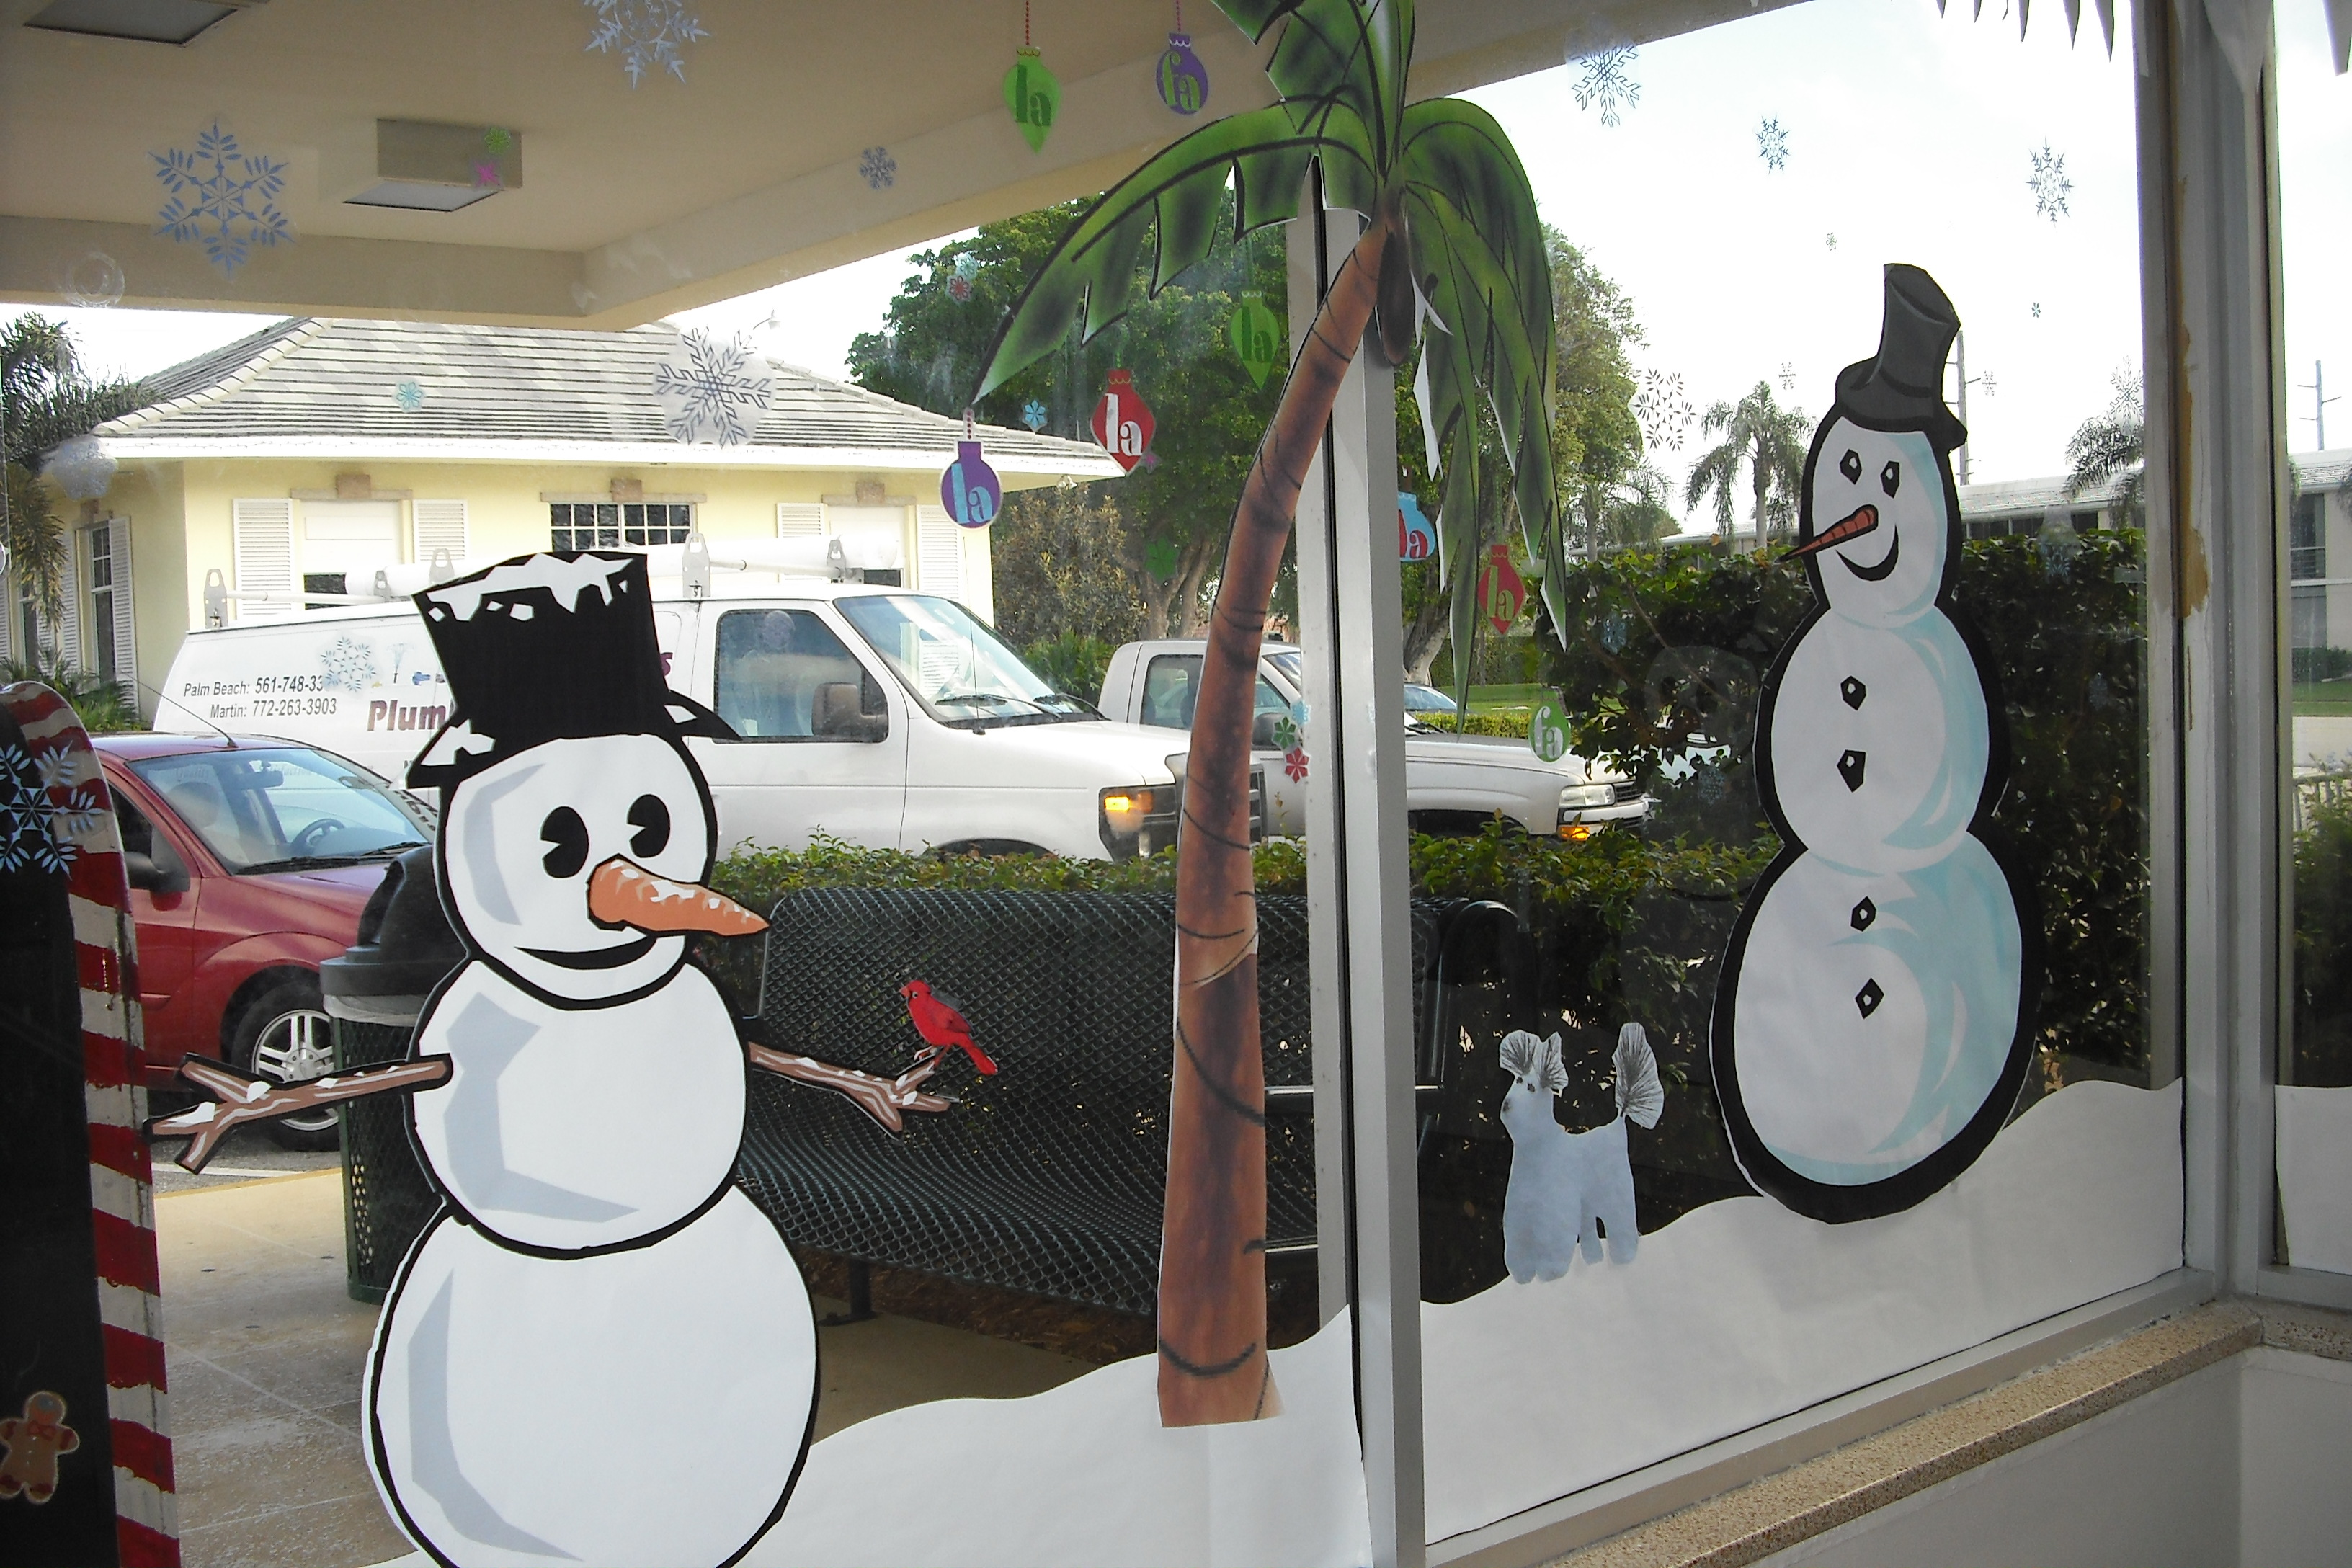 A palm tree decoration in the window with Christmas ornaments